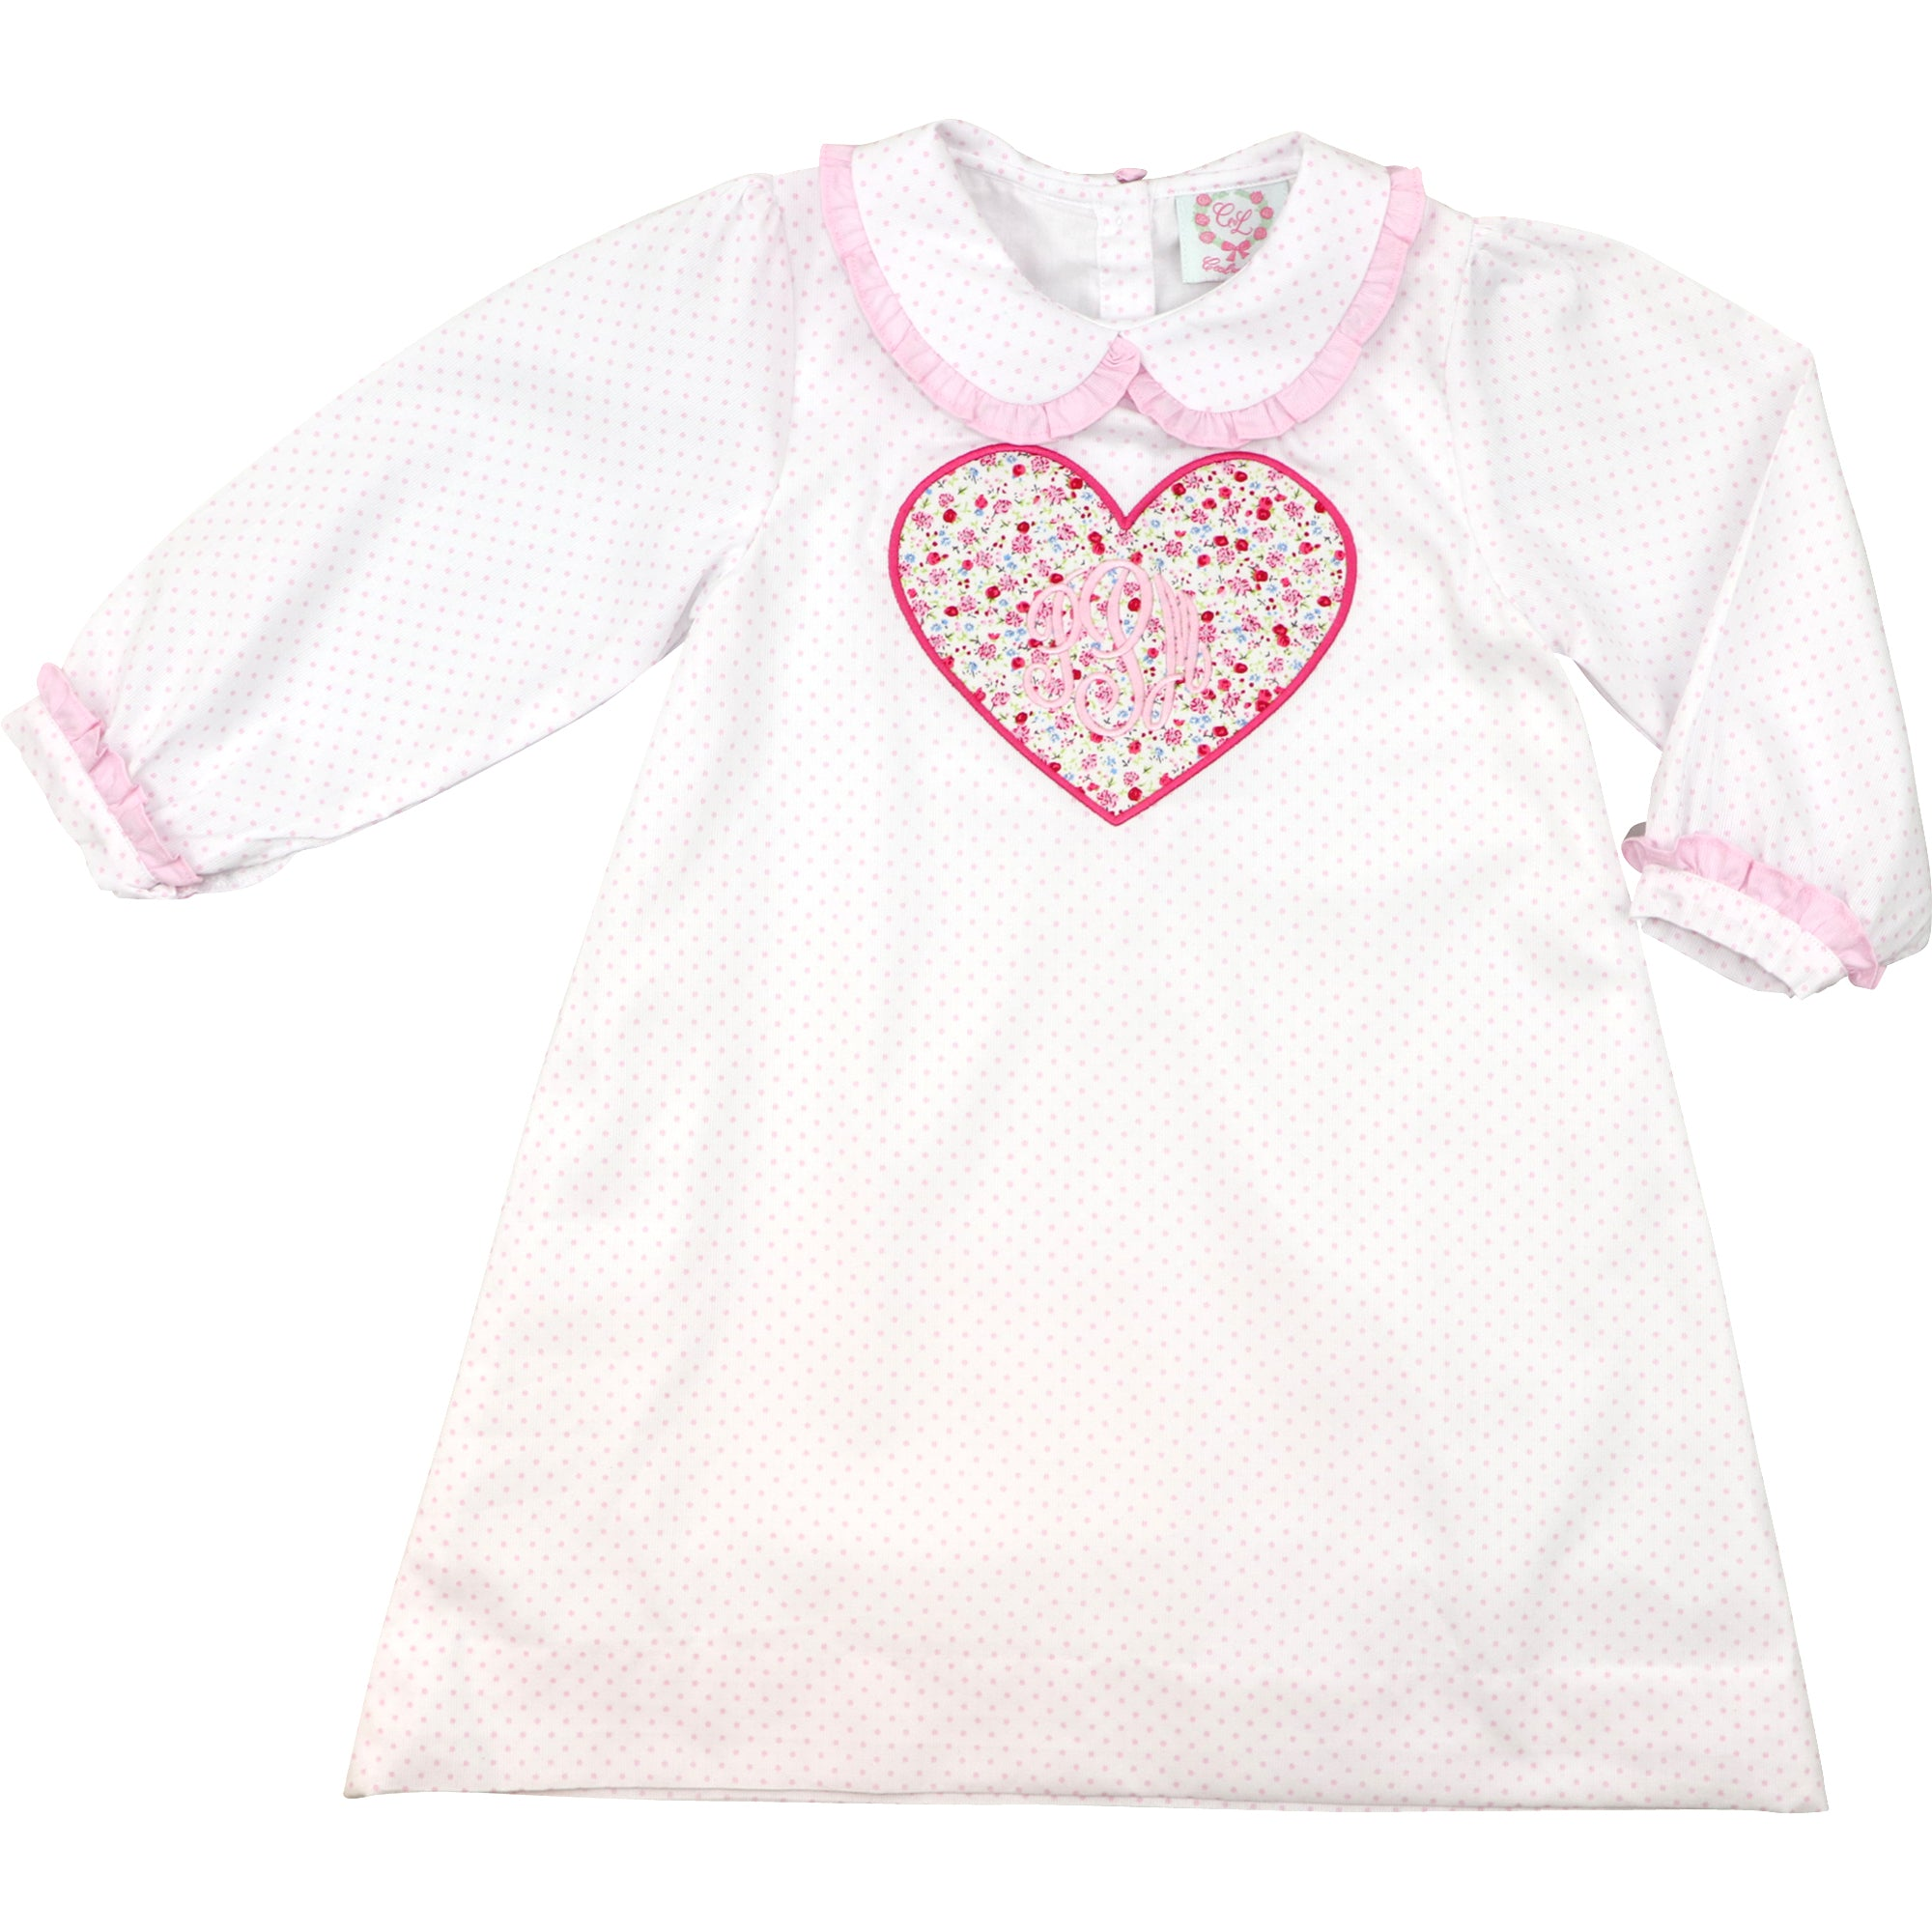 Pink Dot and Liberty Heart Dress